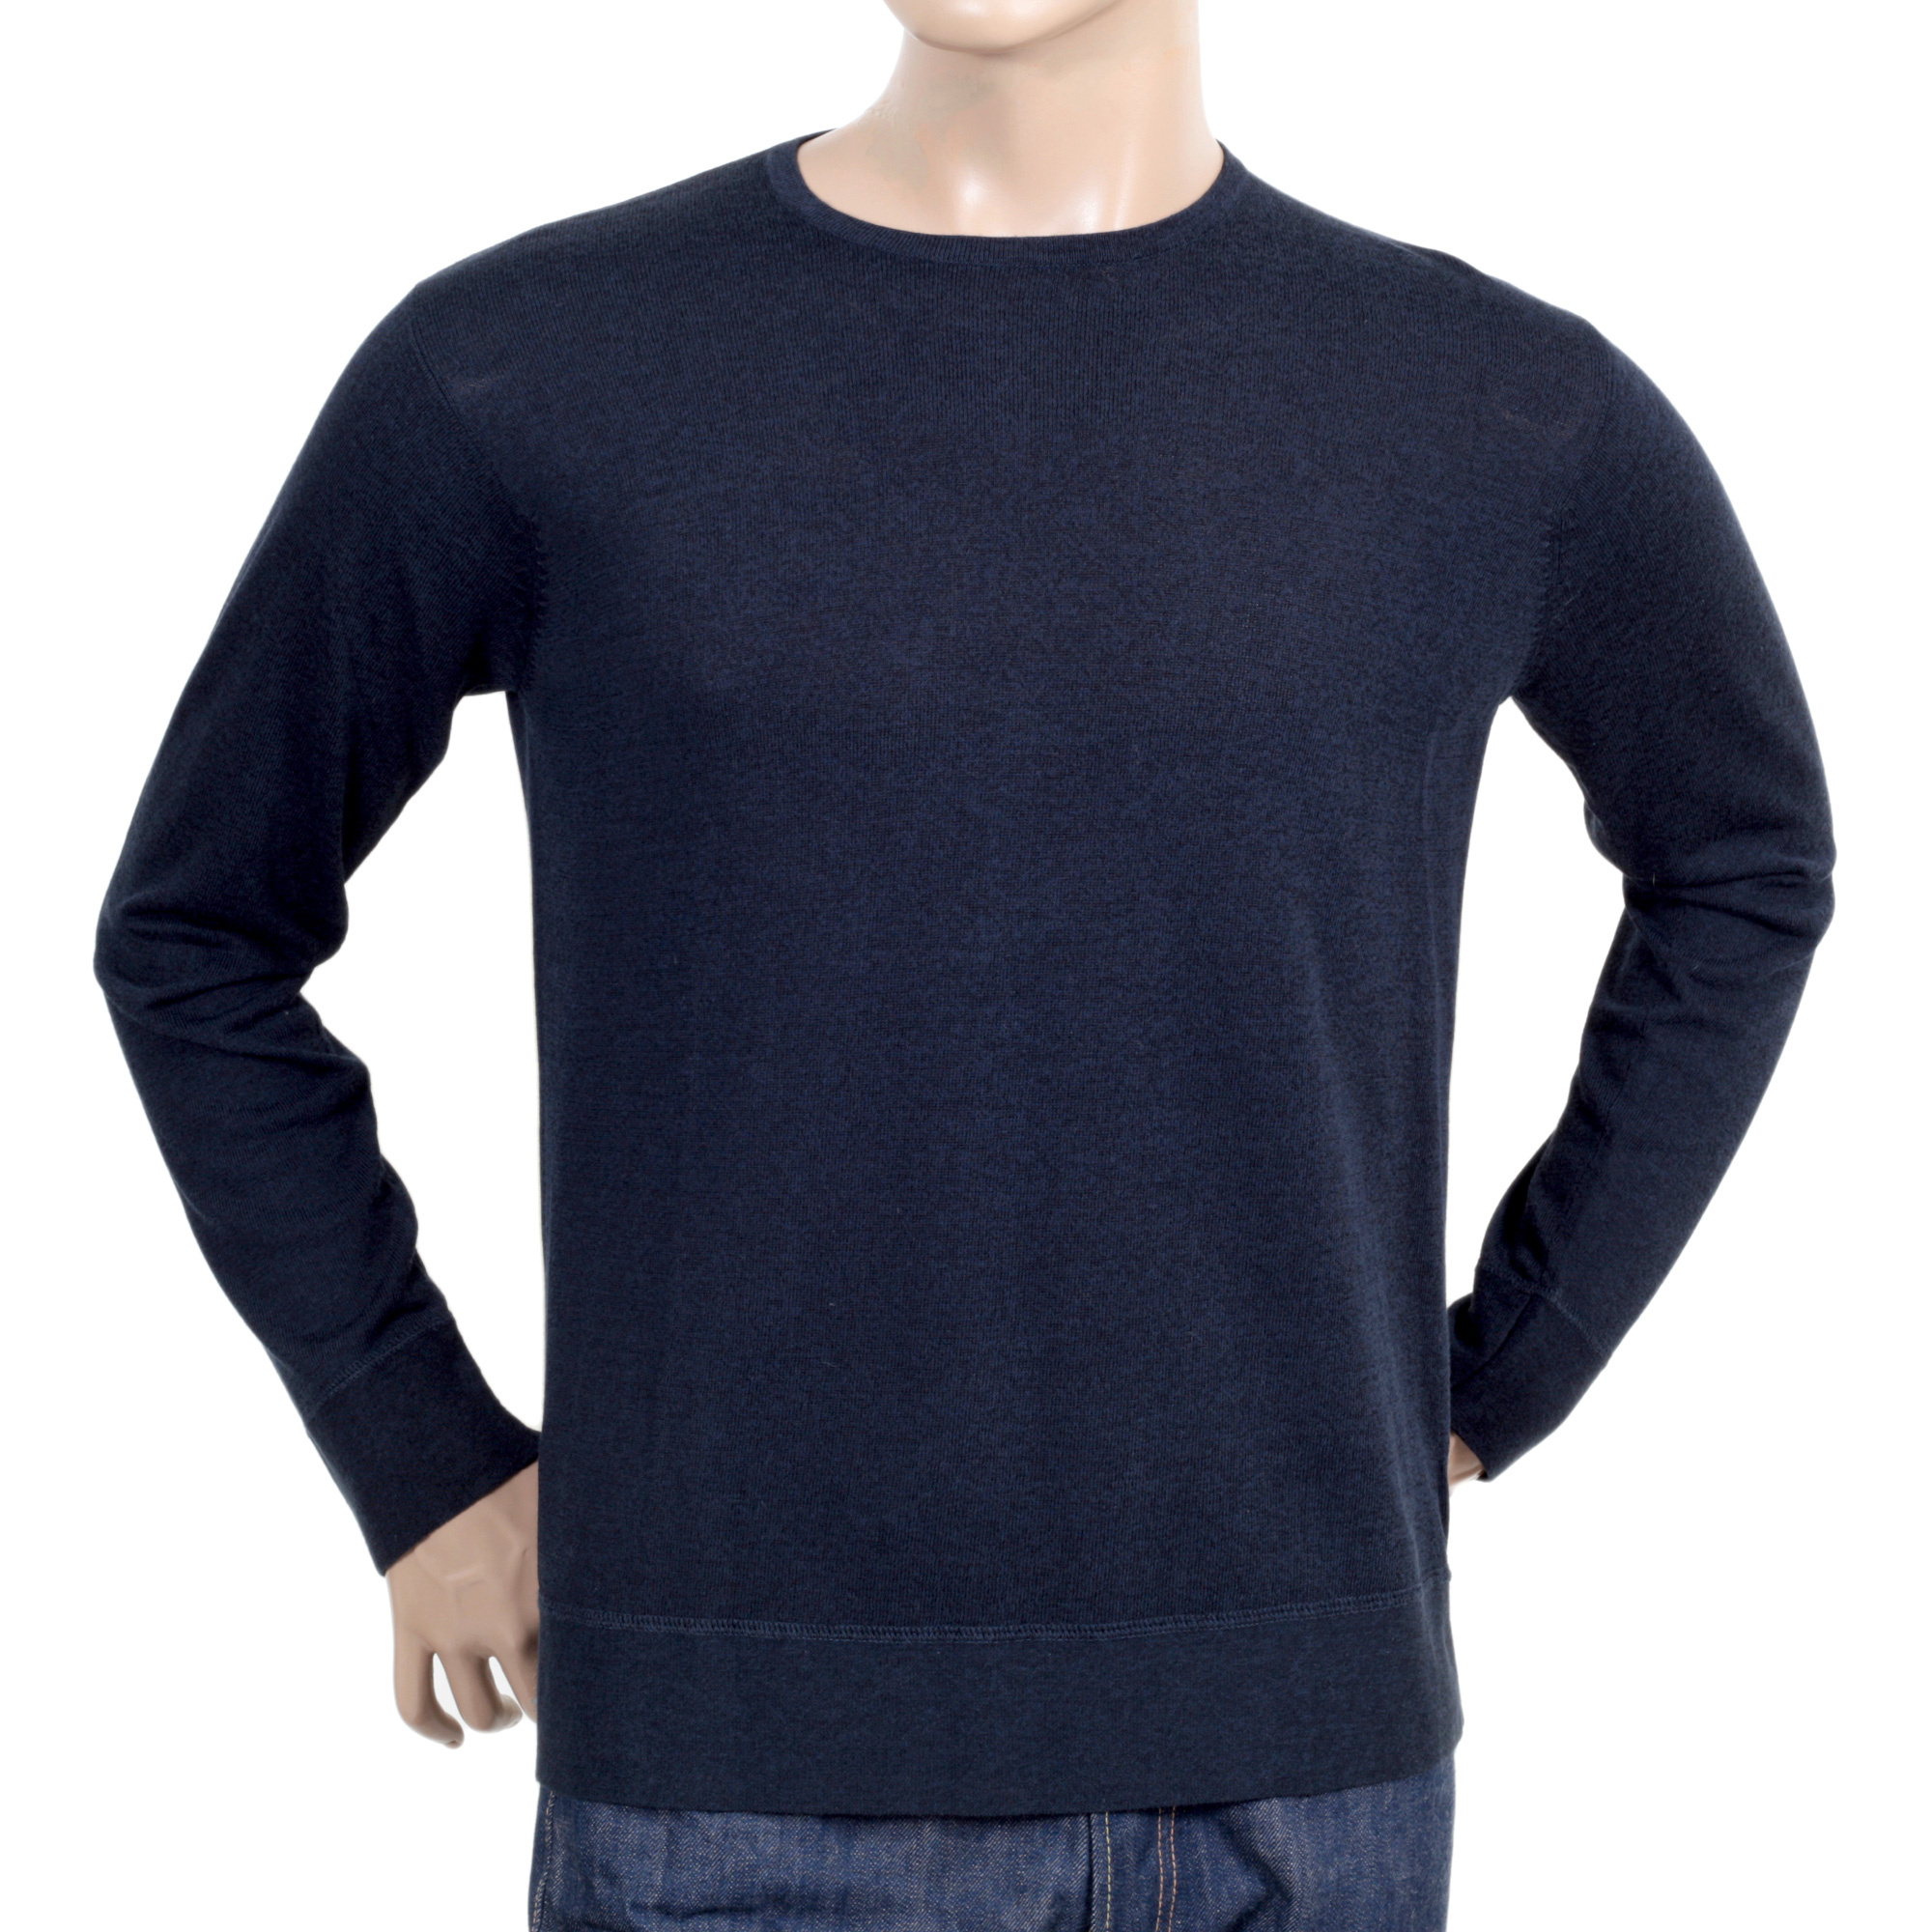 Knitted Jumper from Armani